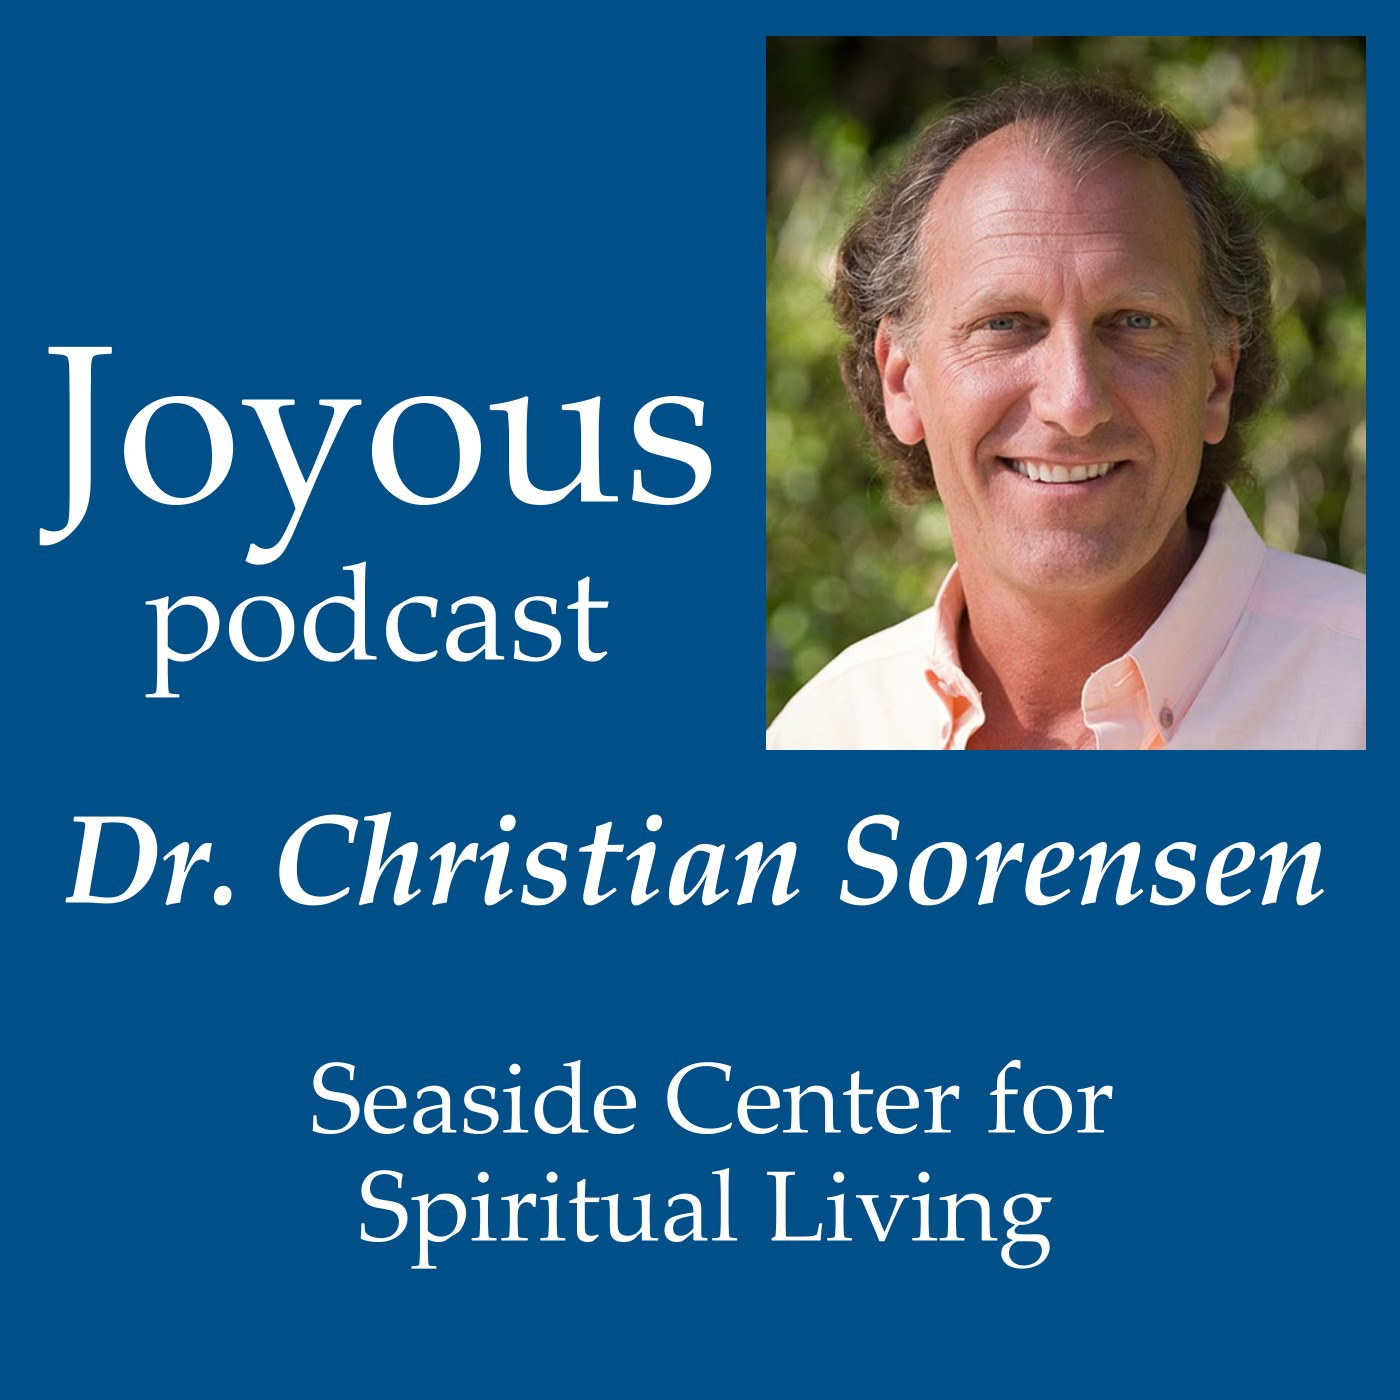 A weekly audio podcast message from the author and international speaker Rev. Dr. Christian Sorensen at the Seaside Center for Spiritual Living.